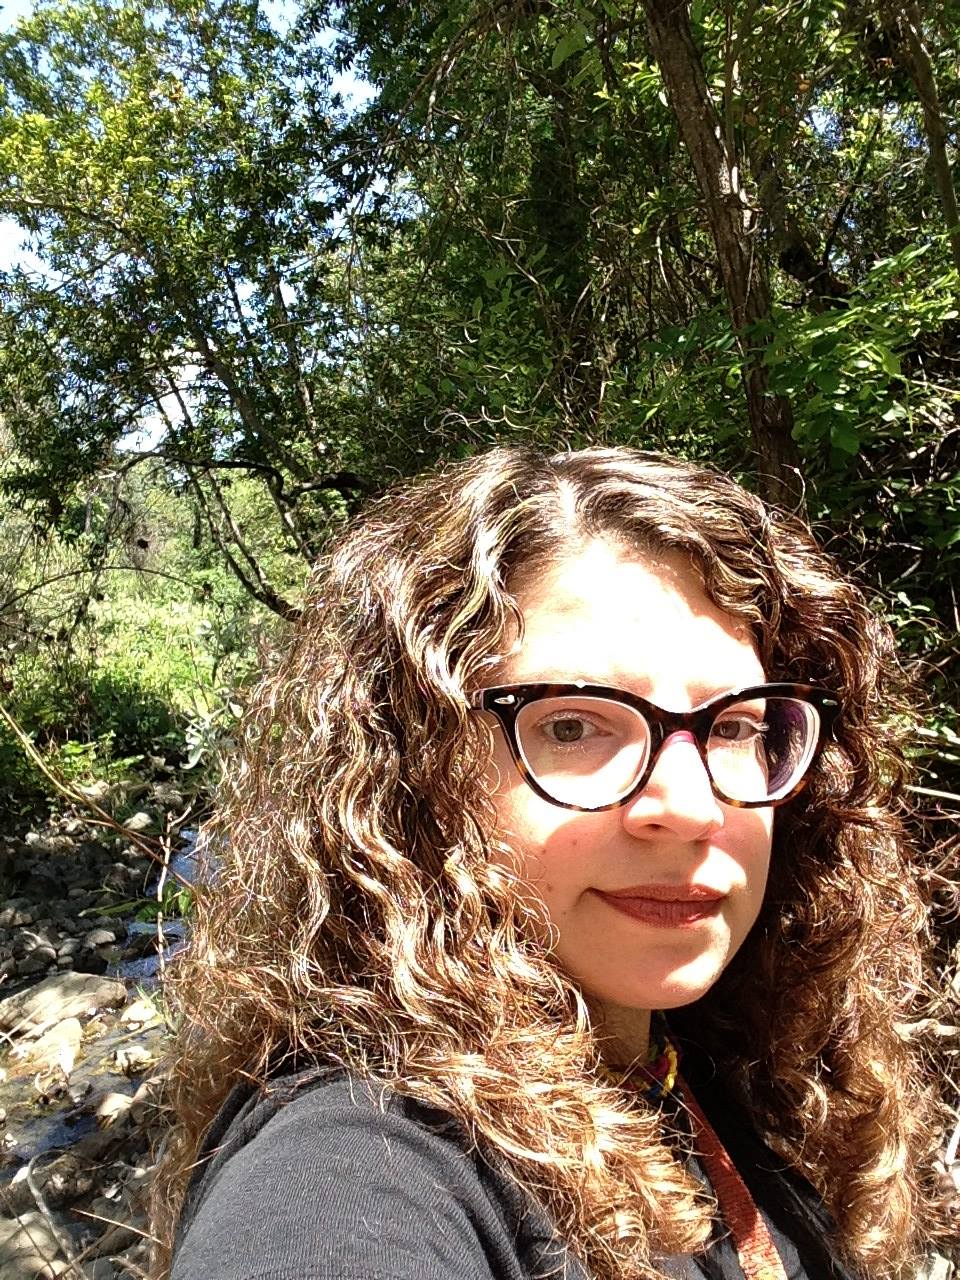 - Melissa Eleftherion grew up in Brooklyn. A high school dropout, she went on to earn an MFA in Poetry from Mills College and an MLIS from San Jose State University. She is the author of five chapbooks:huminsect, prism maps, Pigtail Duty, the leaves the leaves, &green glass asterisms. Her first full-length collection,field guide to autobiography, has just been published by H_NGM_N Books. Founder of the Poetry Center Chapbook Exchange for San Francisco State University, Melissa now lives in Mendocino County where she works as a Teen Librarian, teaches creative writing & curates the LOBA Reading Series at Ukiah Library. More of her work can be found @www.apoetlibrarian.wordpress.com.